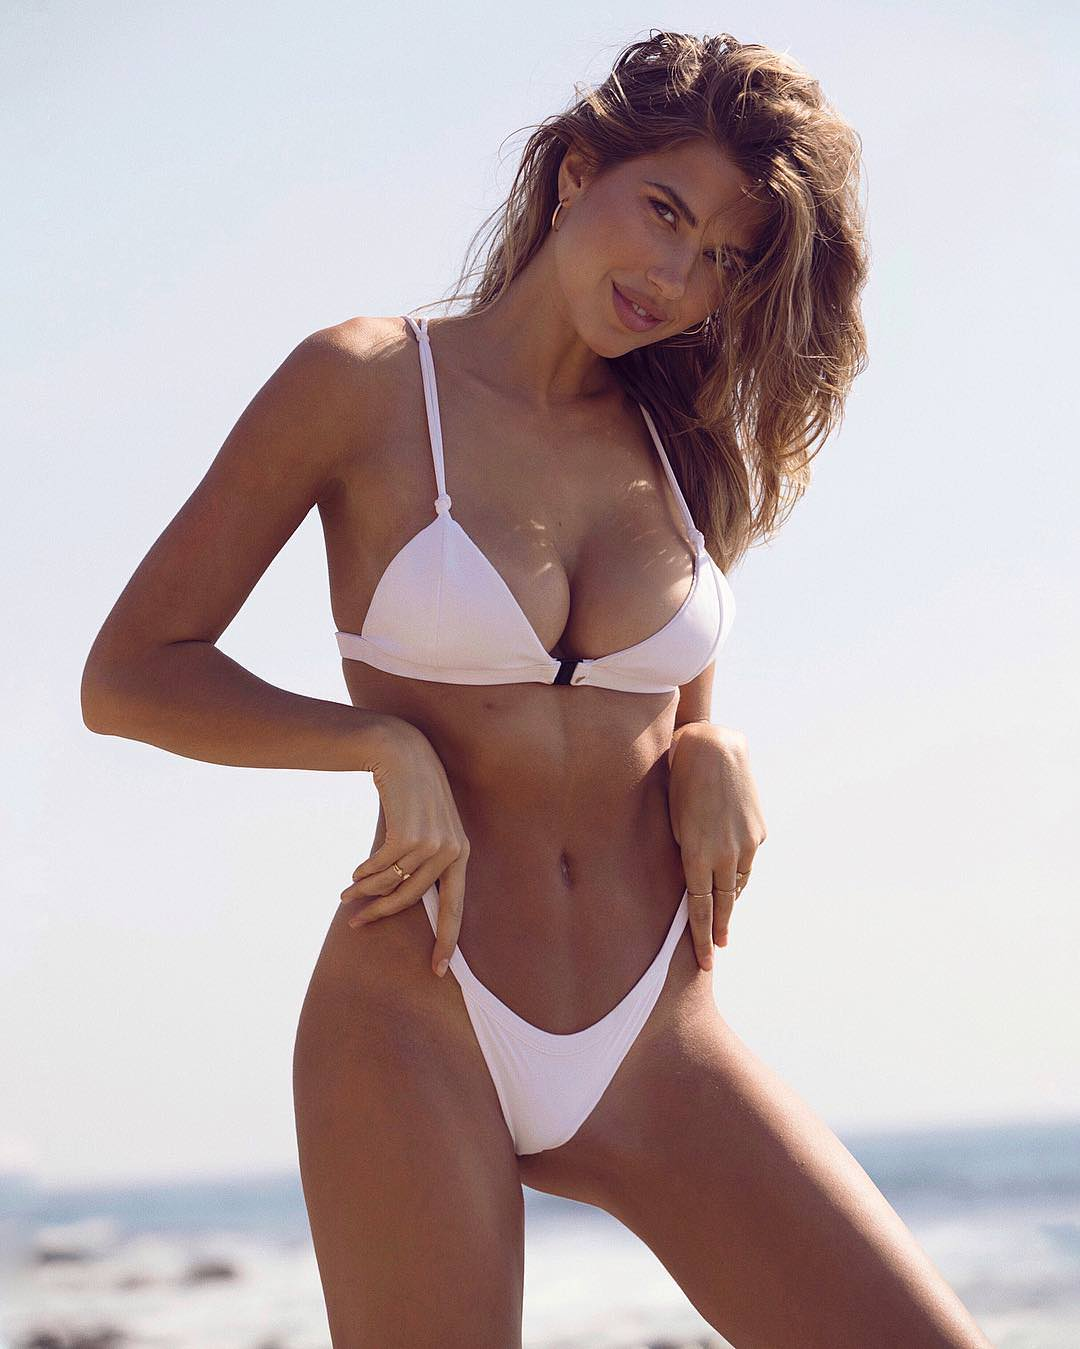 Bikini Kara Del Toro naked (55 foto and video), Pussy, Cleavage, Boobs, lingerie 2018